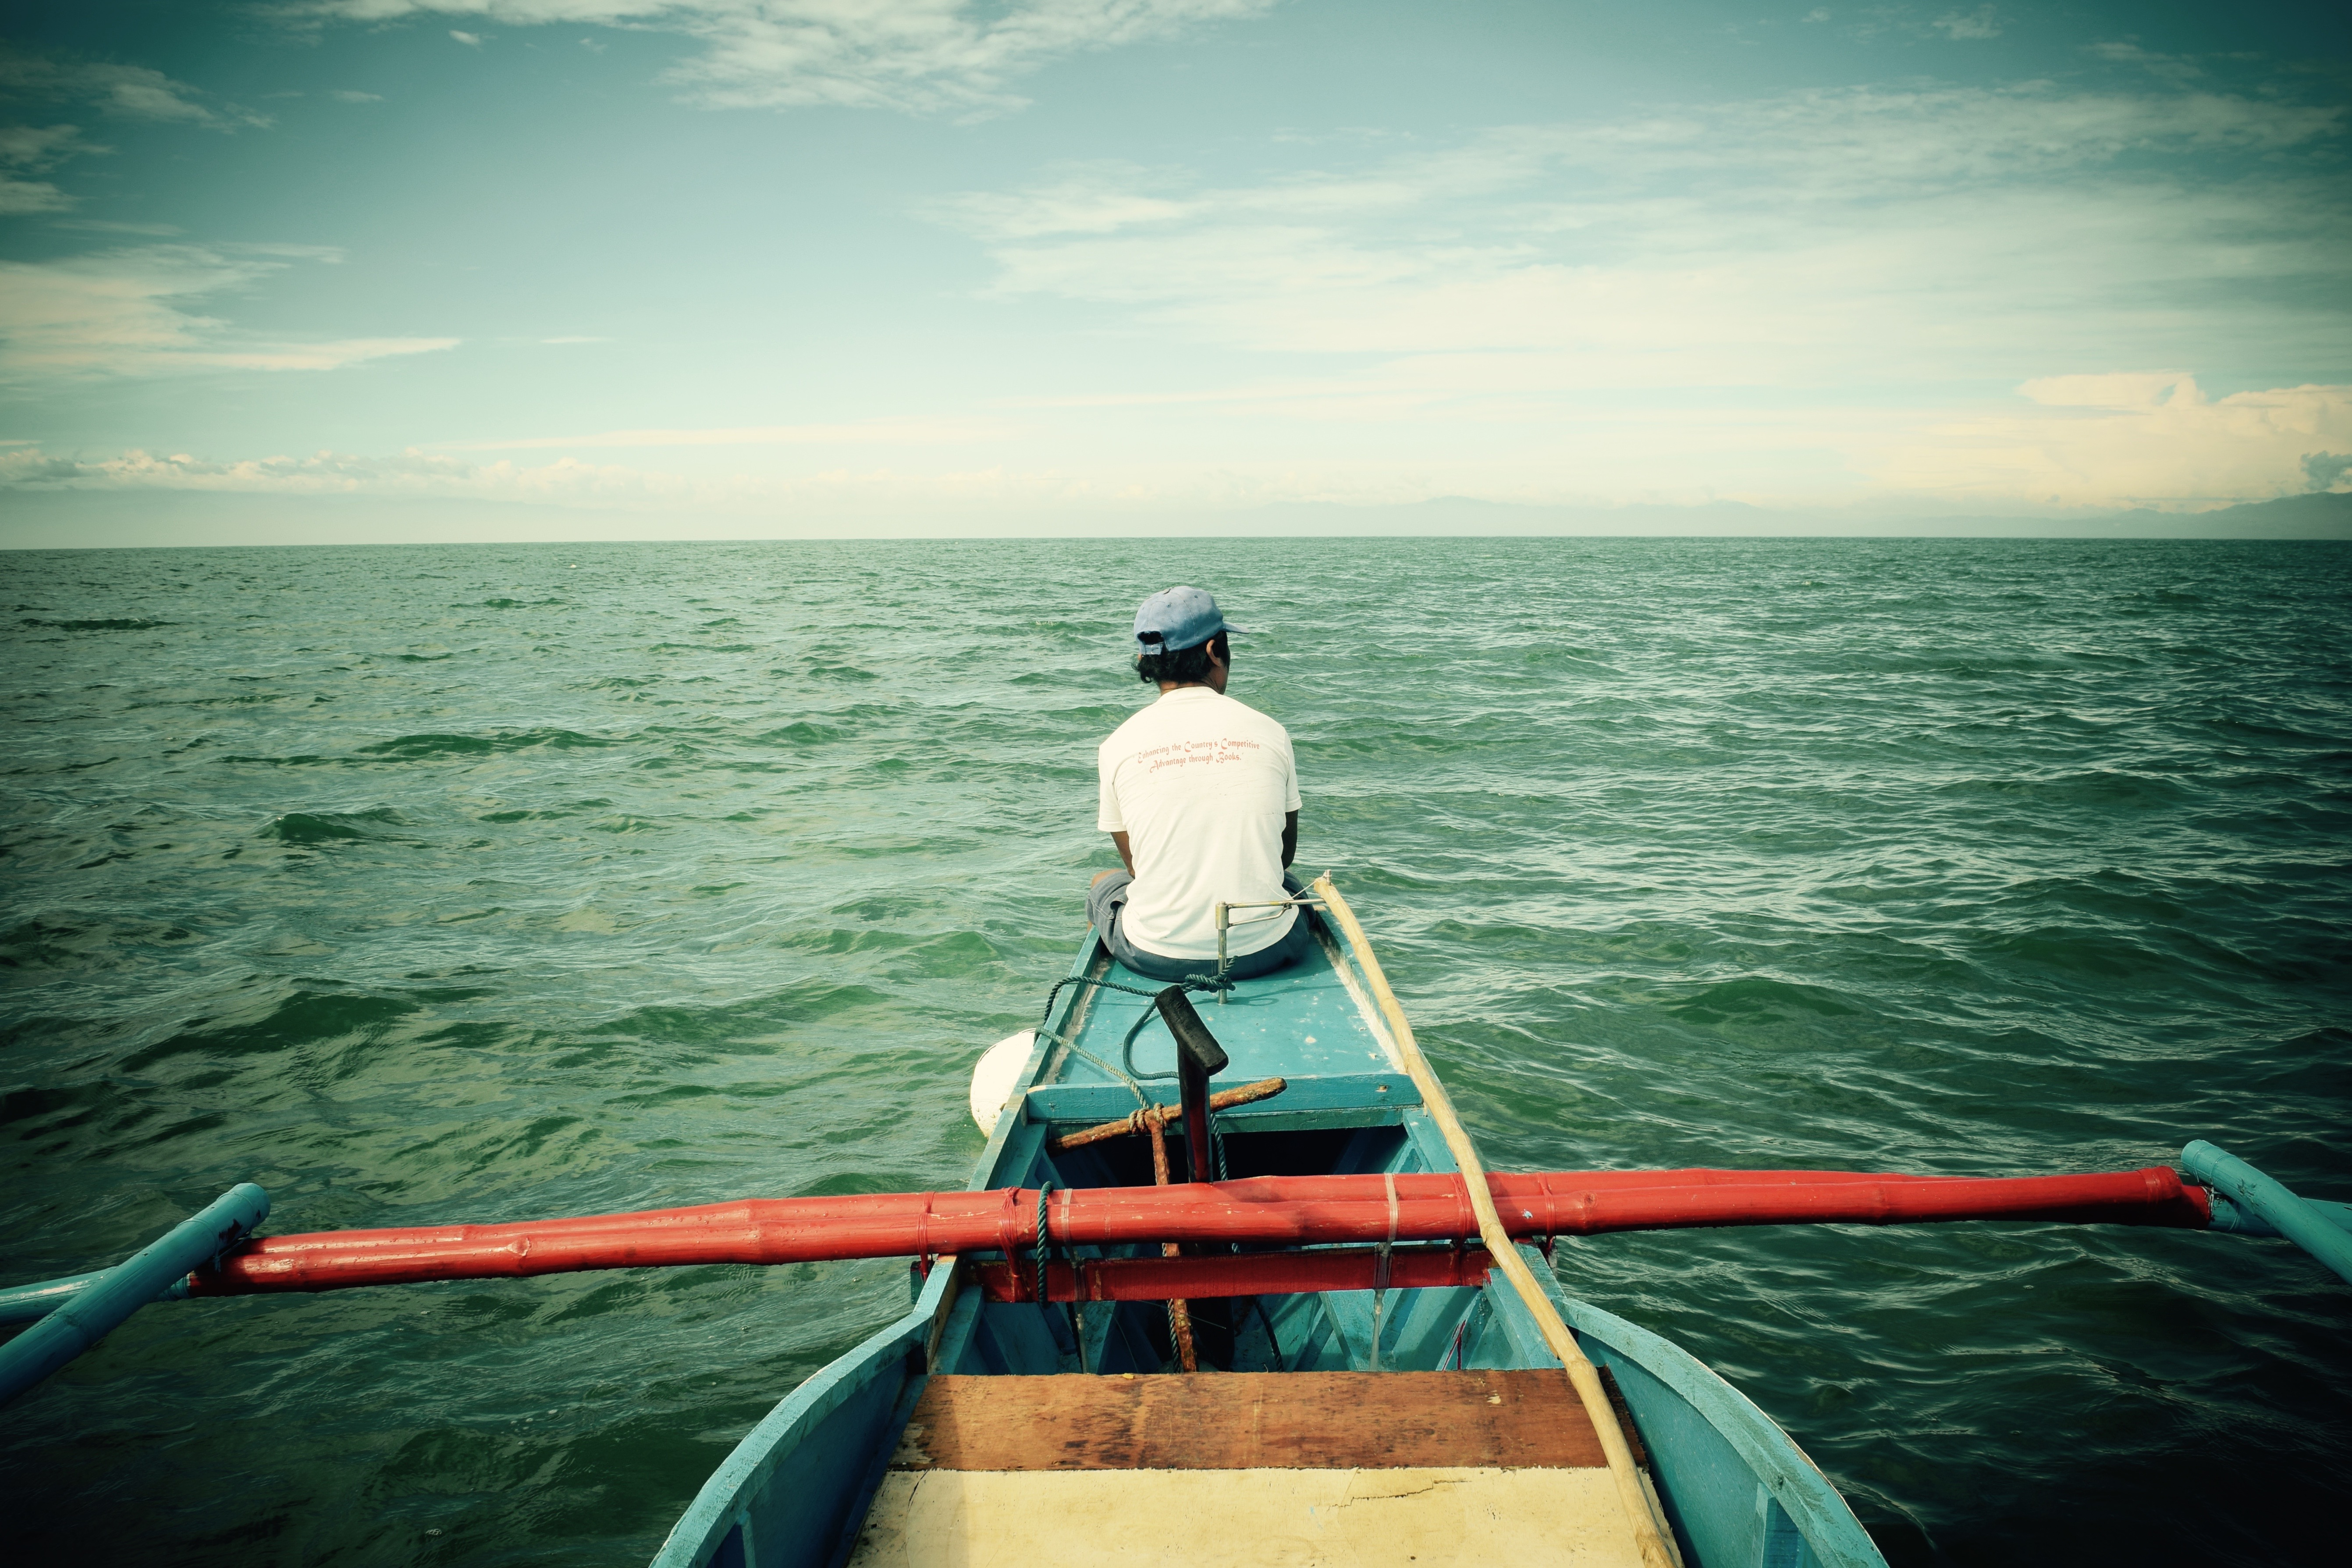 We took this banca to Agutayan Island since we were just 3 passengers. Photo: Fr. Jboy Gonzales SJ